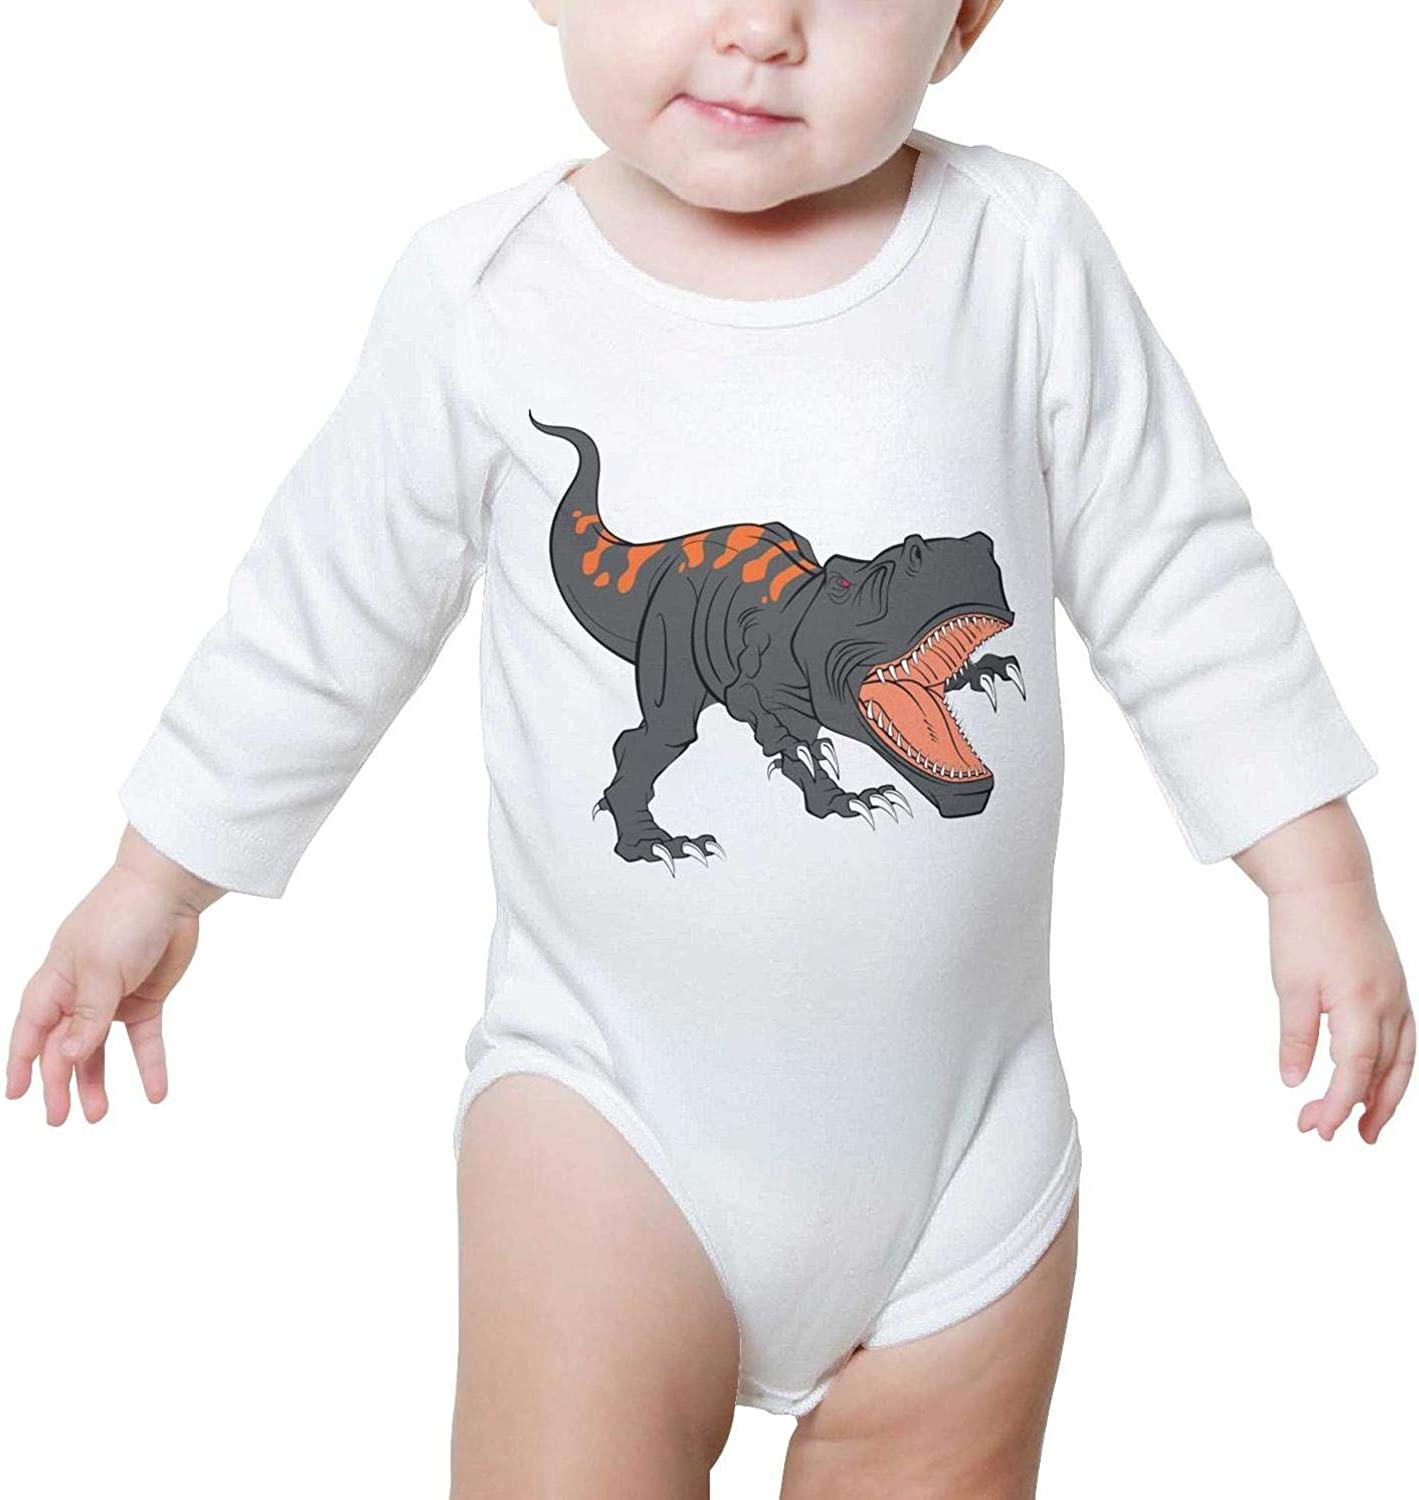 Dinosaur Toys Bicycle Long Sleeve Neutral Baby Onesie Bodysuits 0-3 Months for Infant Boys Girls